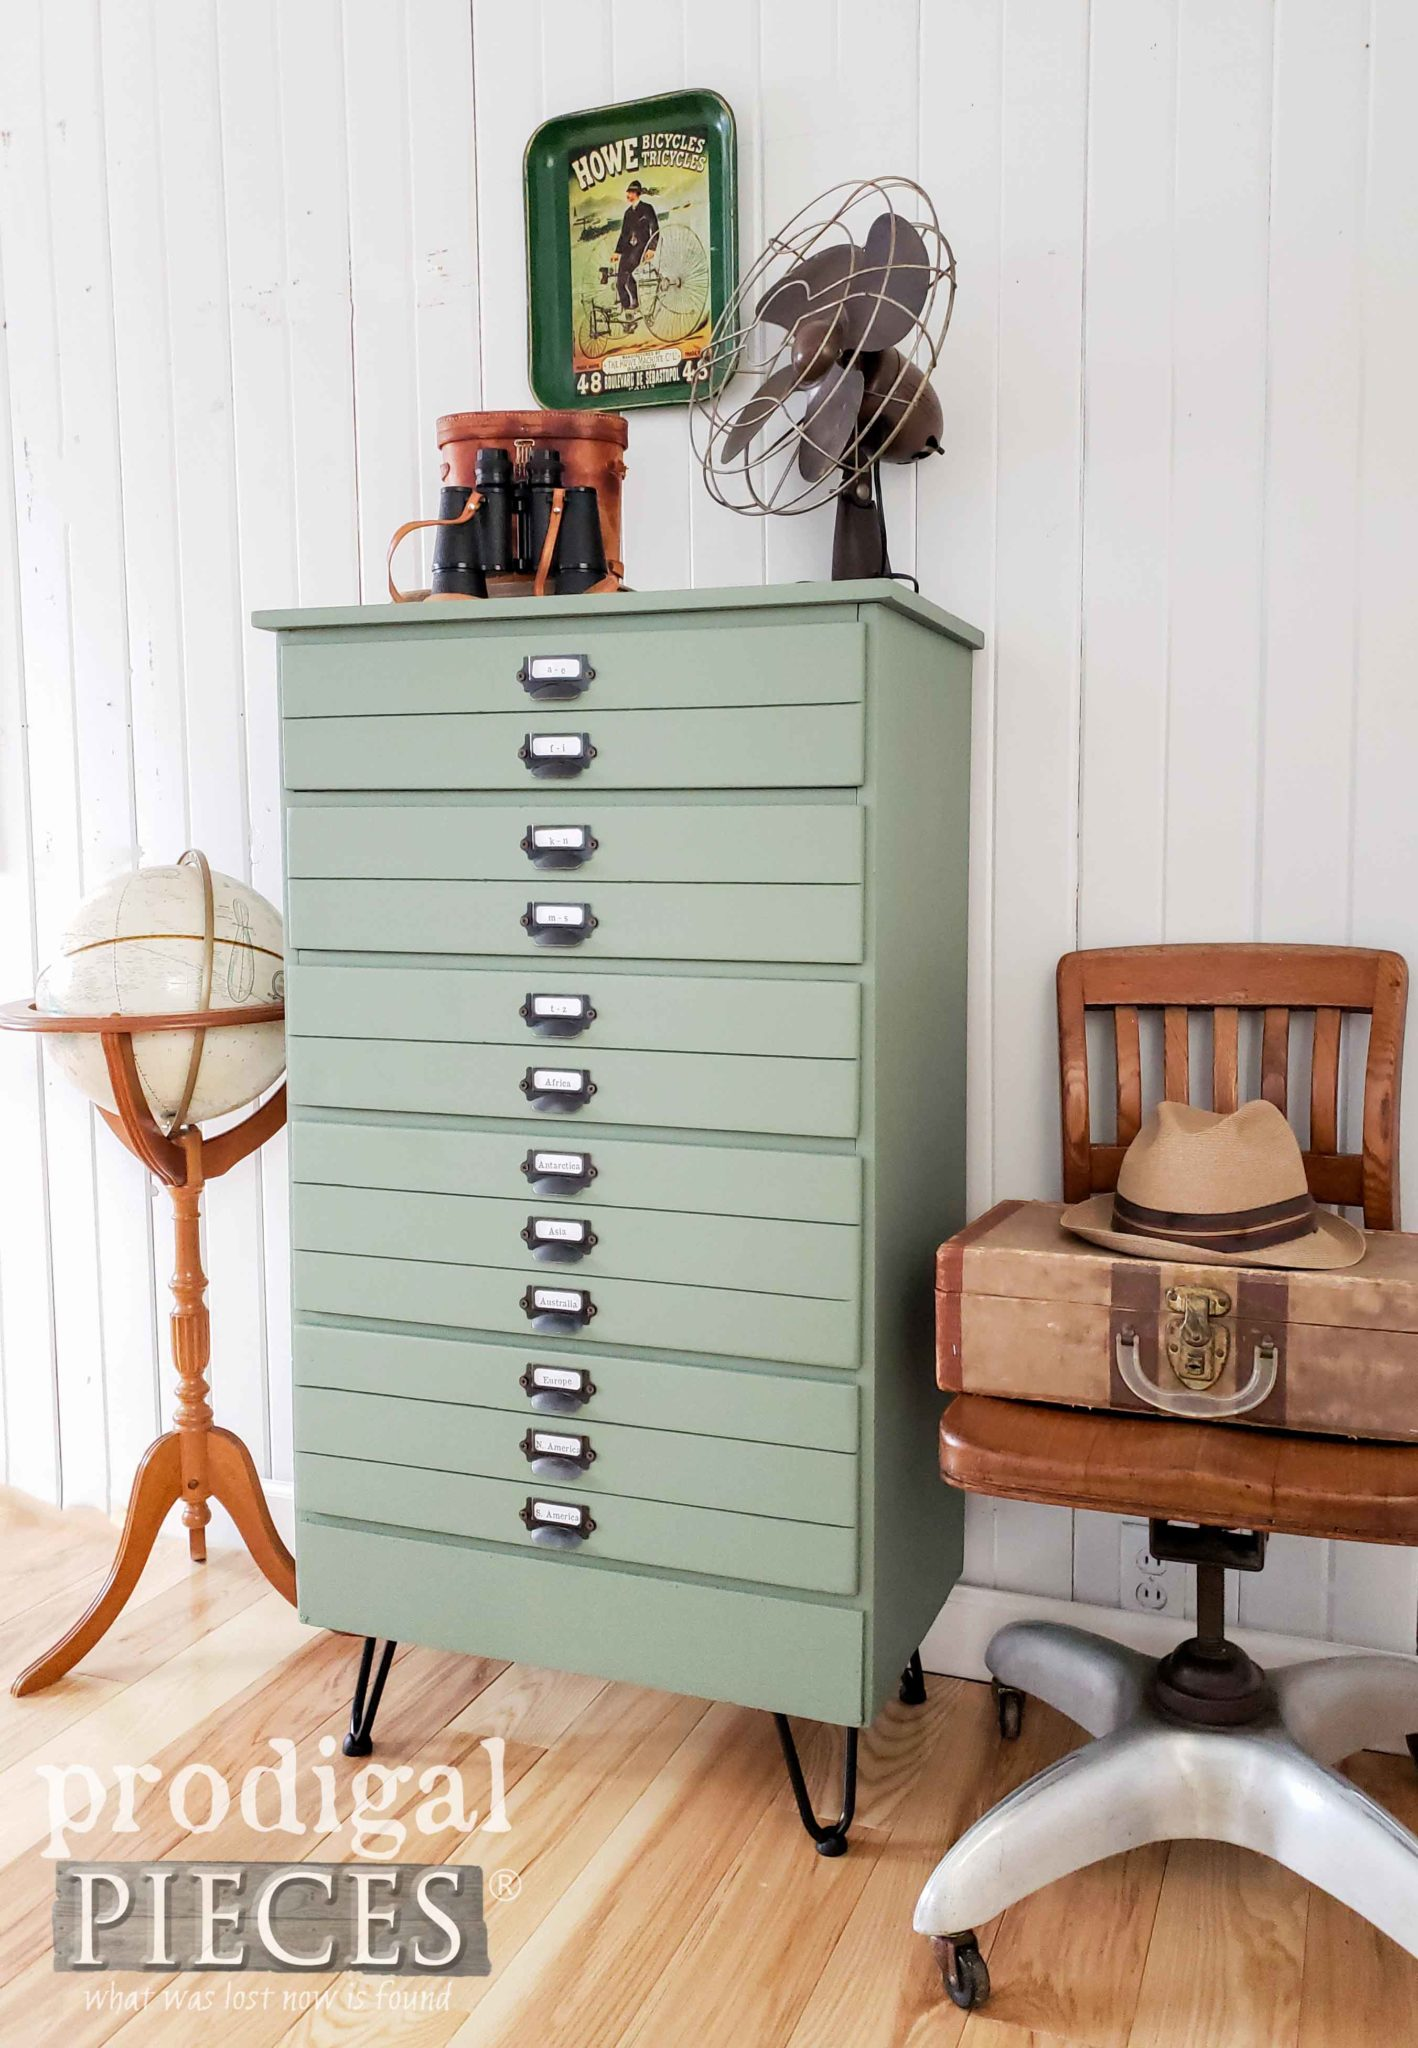 Industrial Style Map Cabinet Chest of Drawers by Larissa of Prodigal Pieces | Video tutorial at prodigalpieces.com #prodigalpieces #diy #handmade #furniture #shopping #home #farmhouse #homedecor #homedecorideas